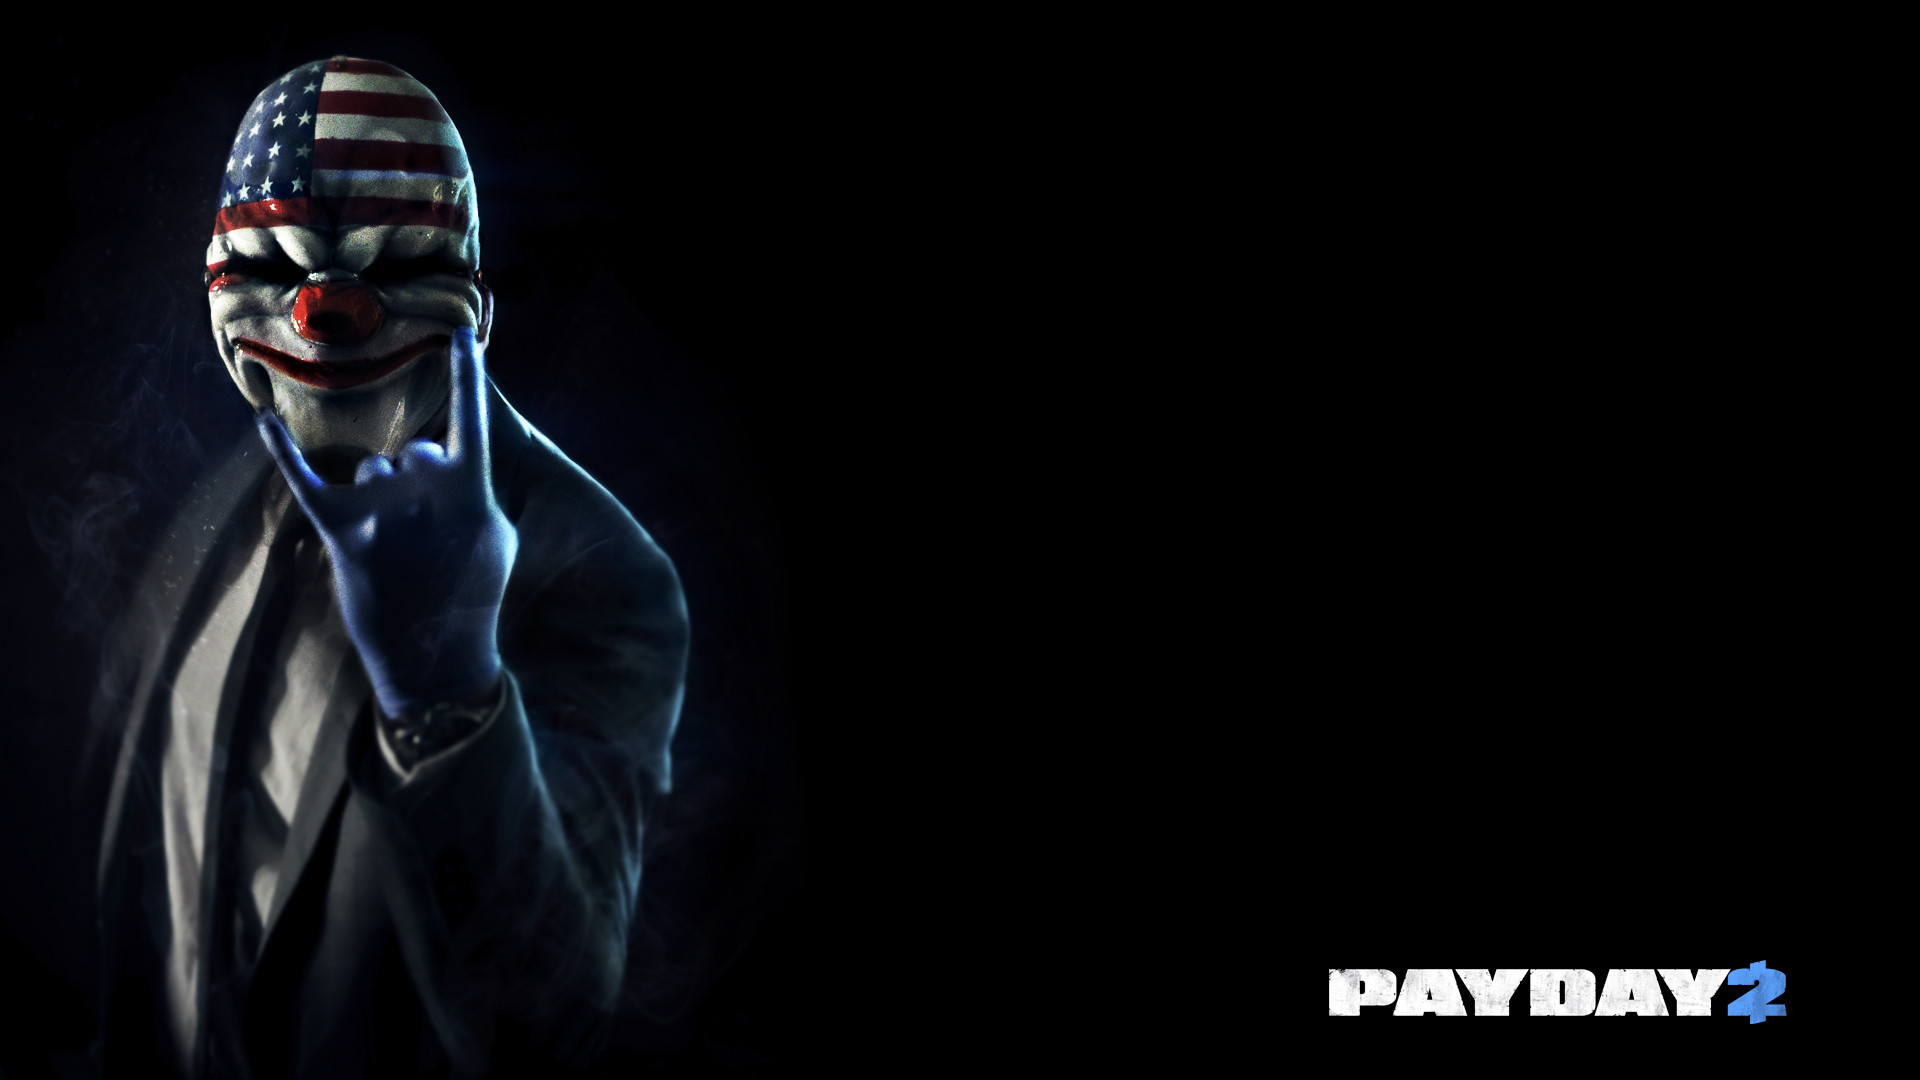 Payday The Heist Full HD Wallpaper And Background